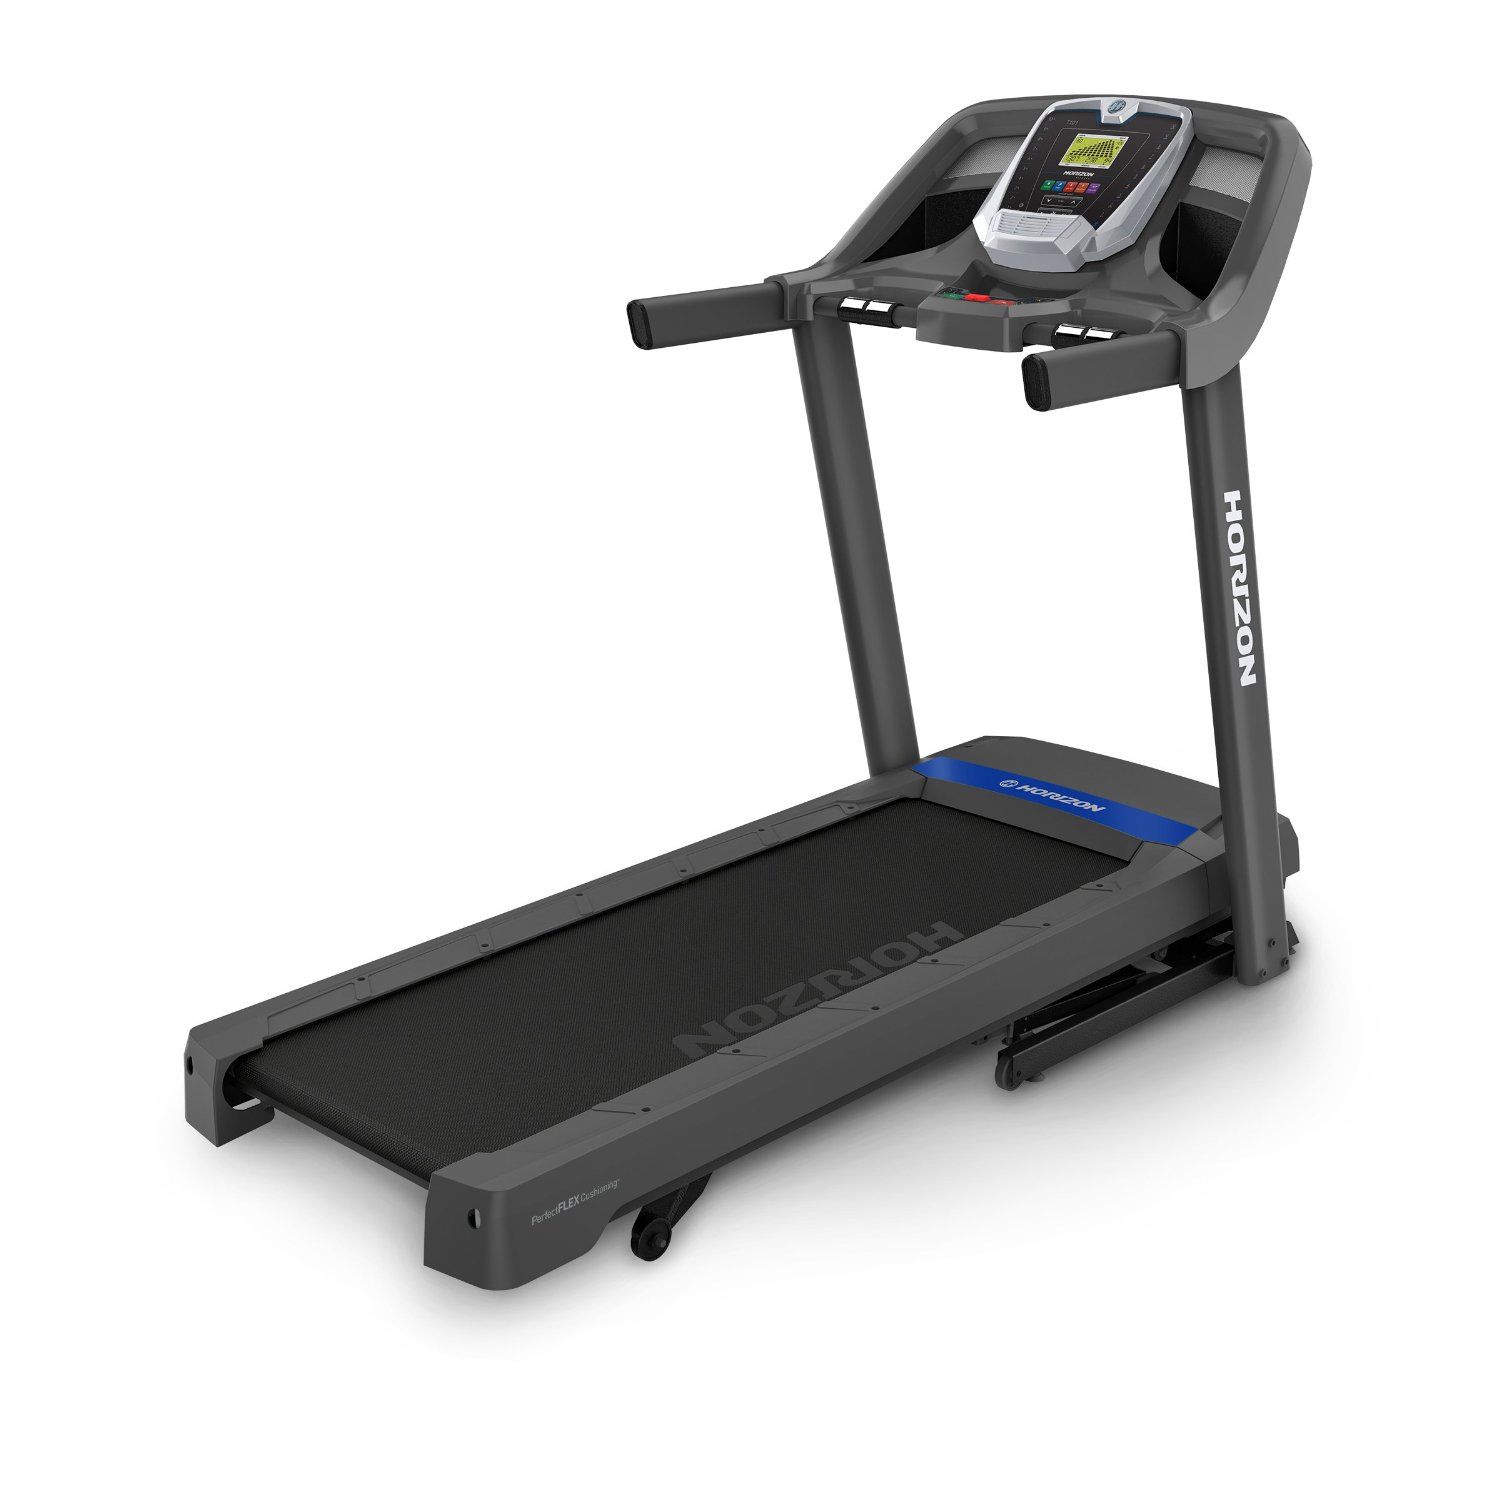 Horizon T101 Treadmill Review – One Of The Best Treadmills